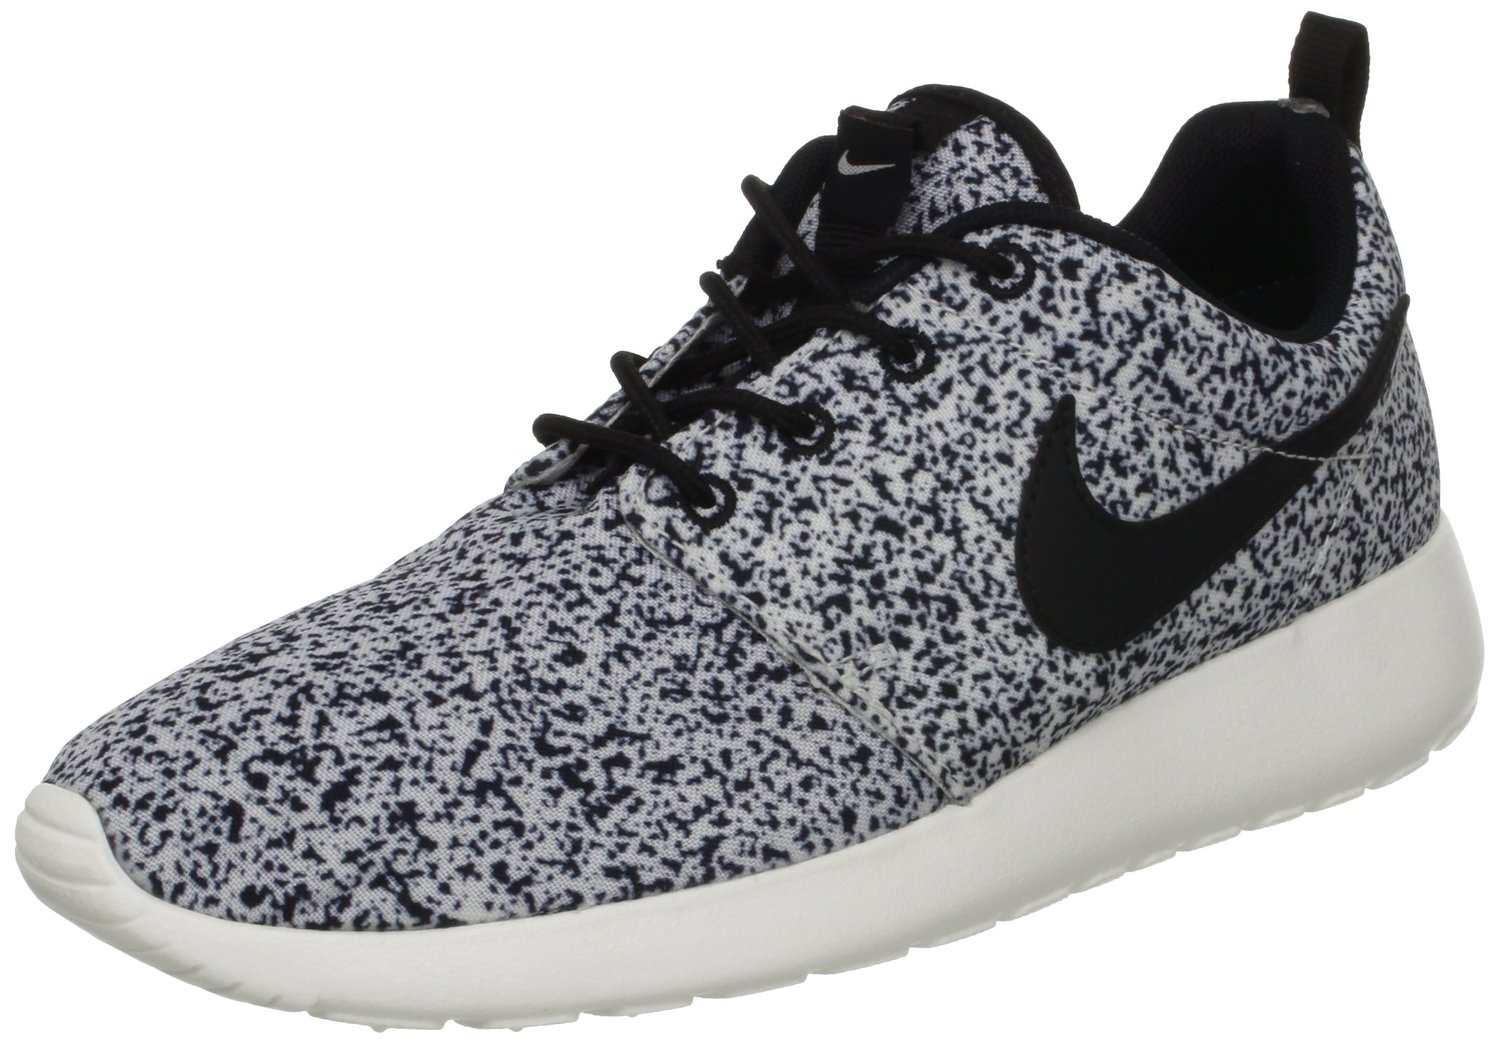 3cc2d54cc3cf Amazon.com  Nike Wmns Roshe Run Black Sail (511882-003)  Shoes